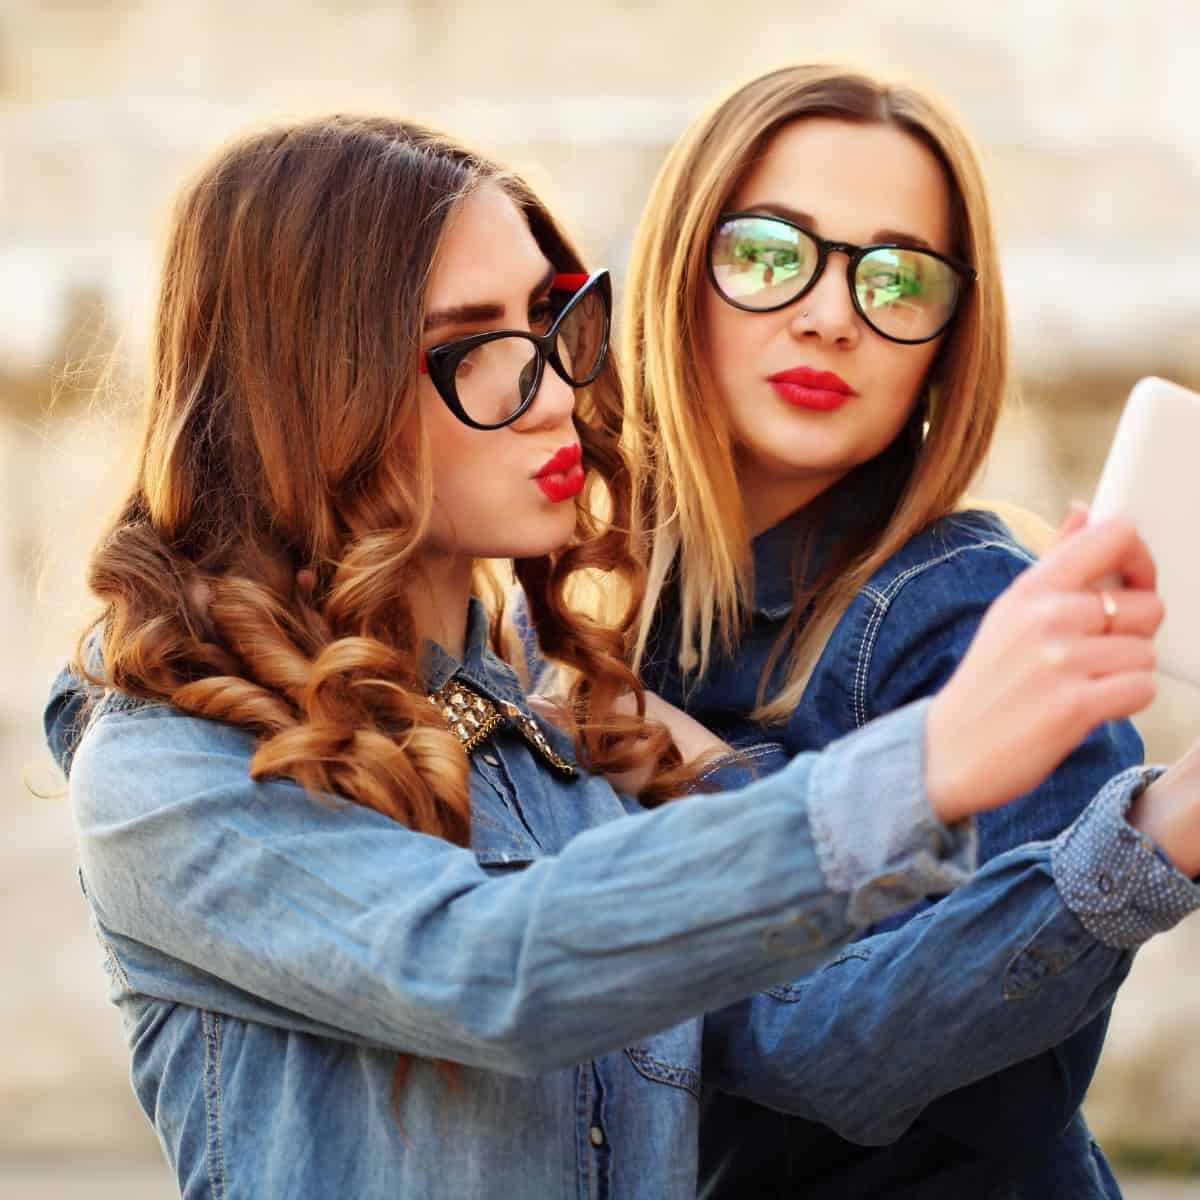 One of the best Instagram business ideas is to become an influencer and promote products and services